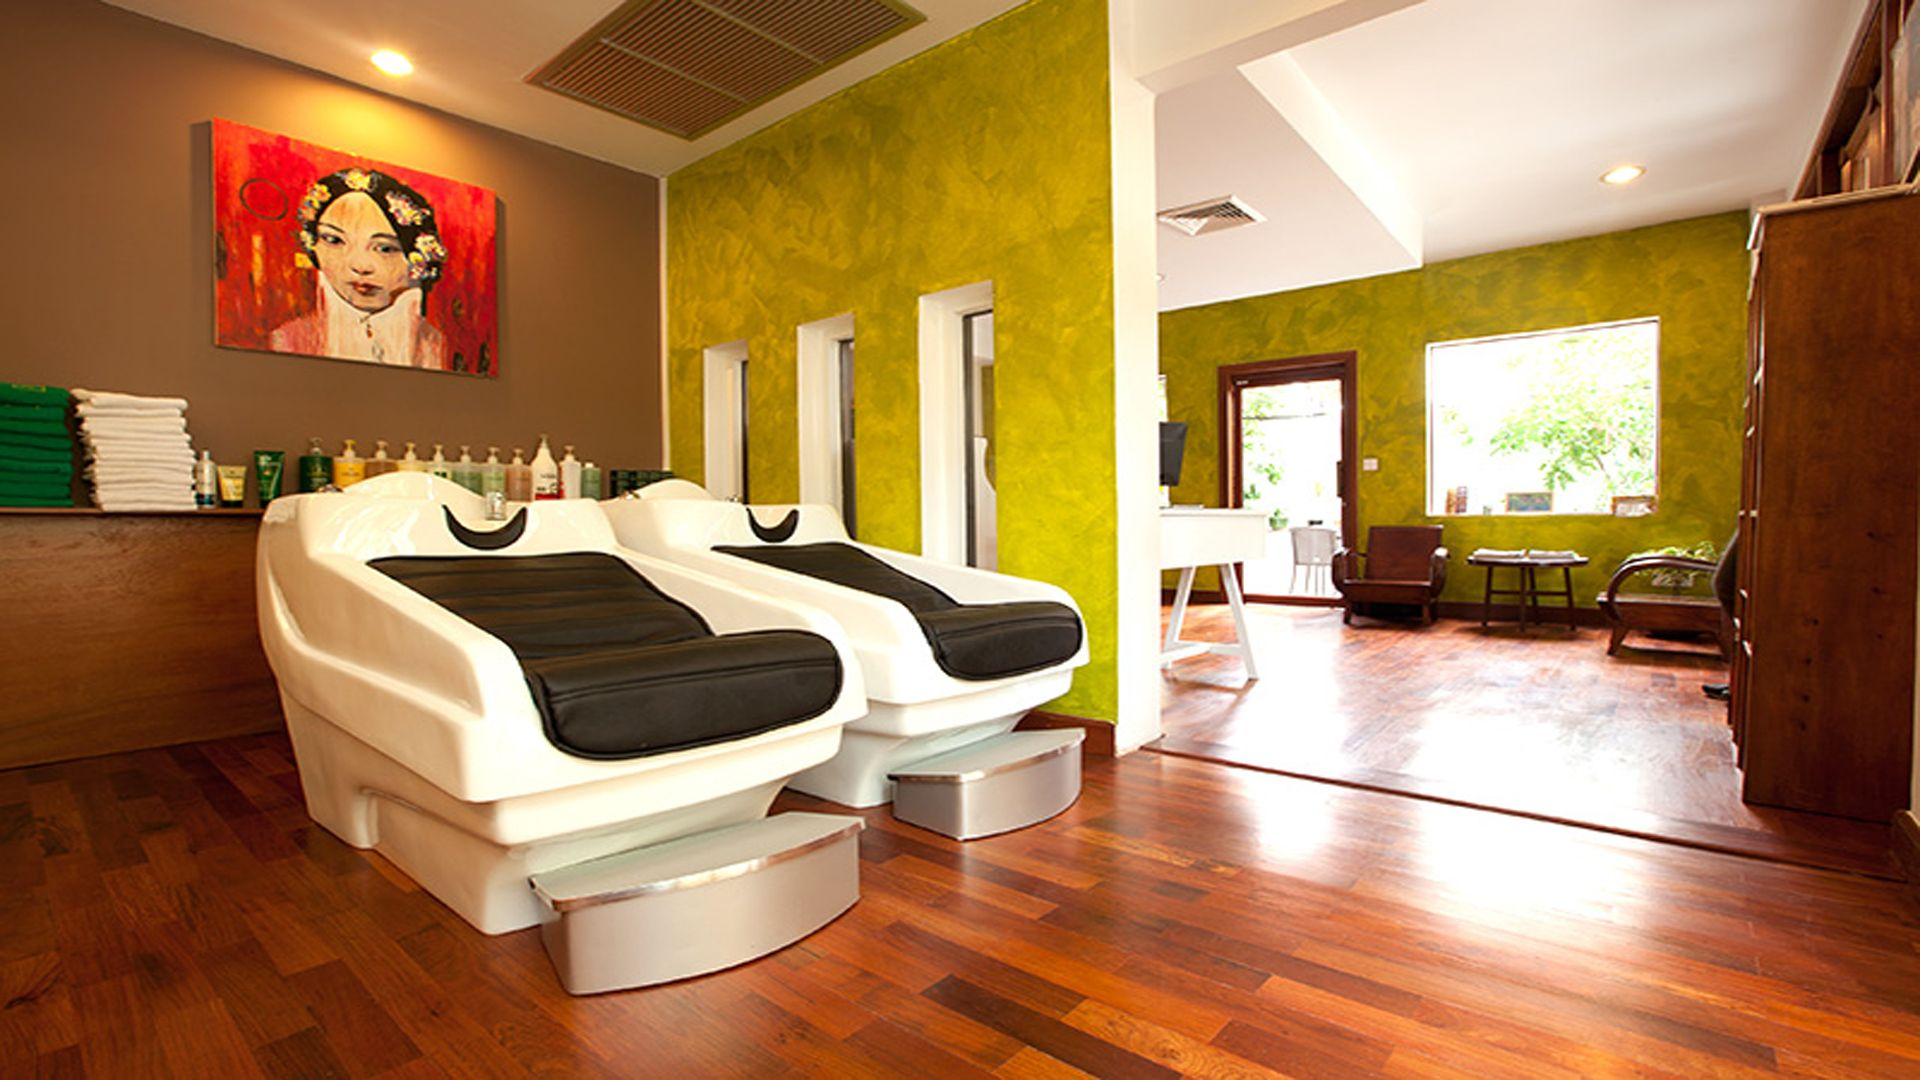 Prince D Angkor Hotel Spa L Atelier Coiffure Hotel Spa Luxury Rooms Hotel